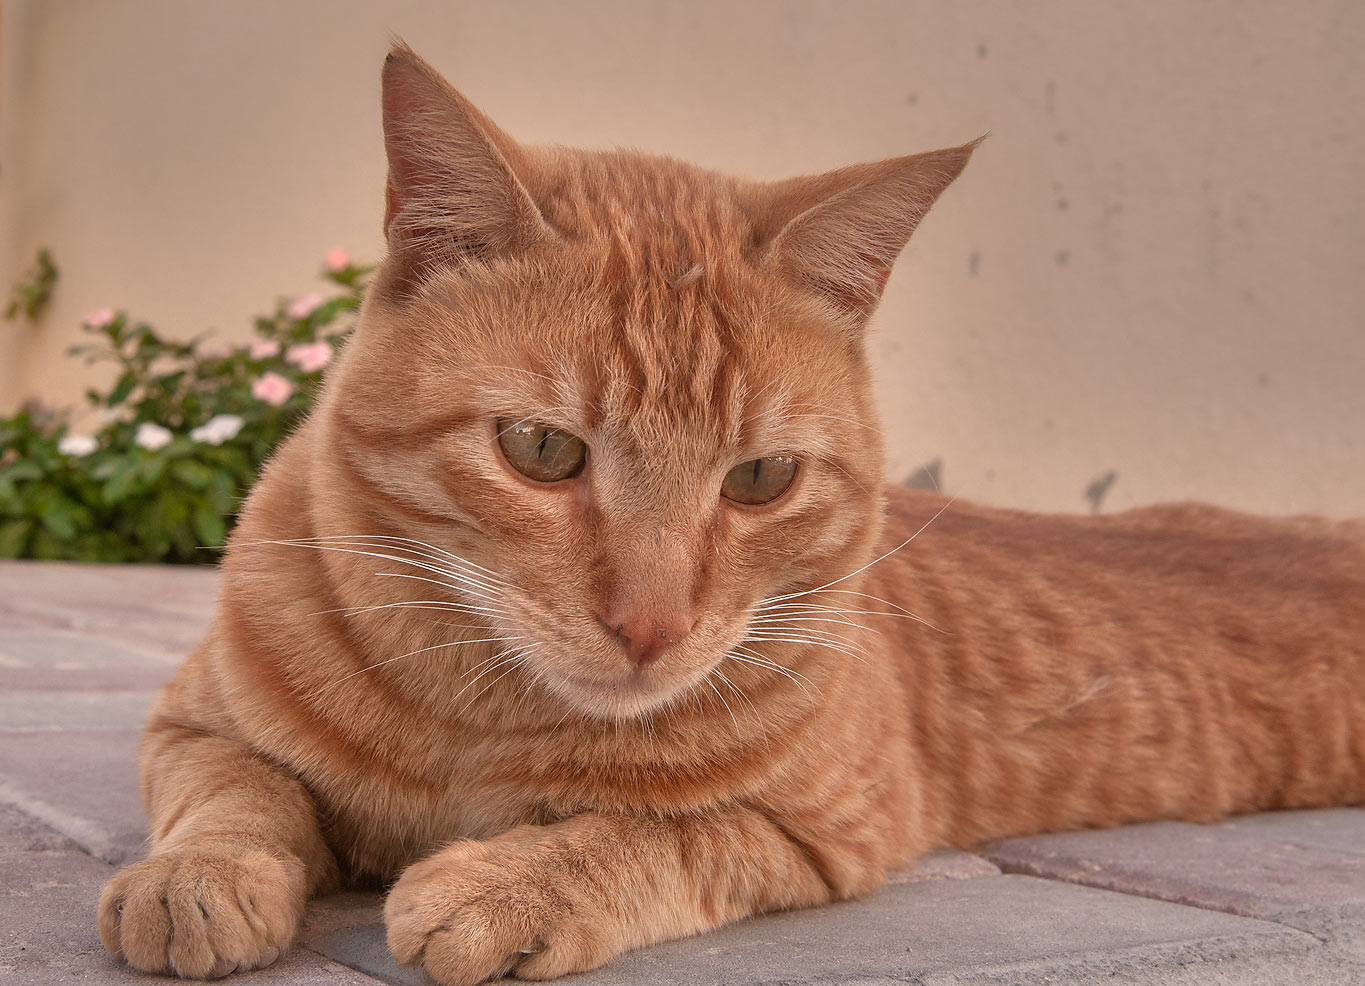 Brown arabian mau cat sitting in Dar Al Salam Compound, Abu Hamour area. Doha, Qatar